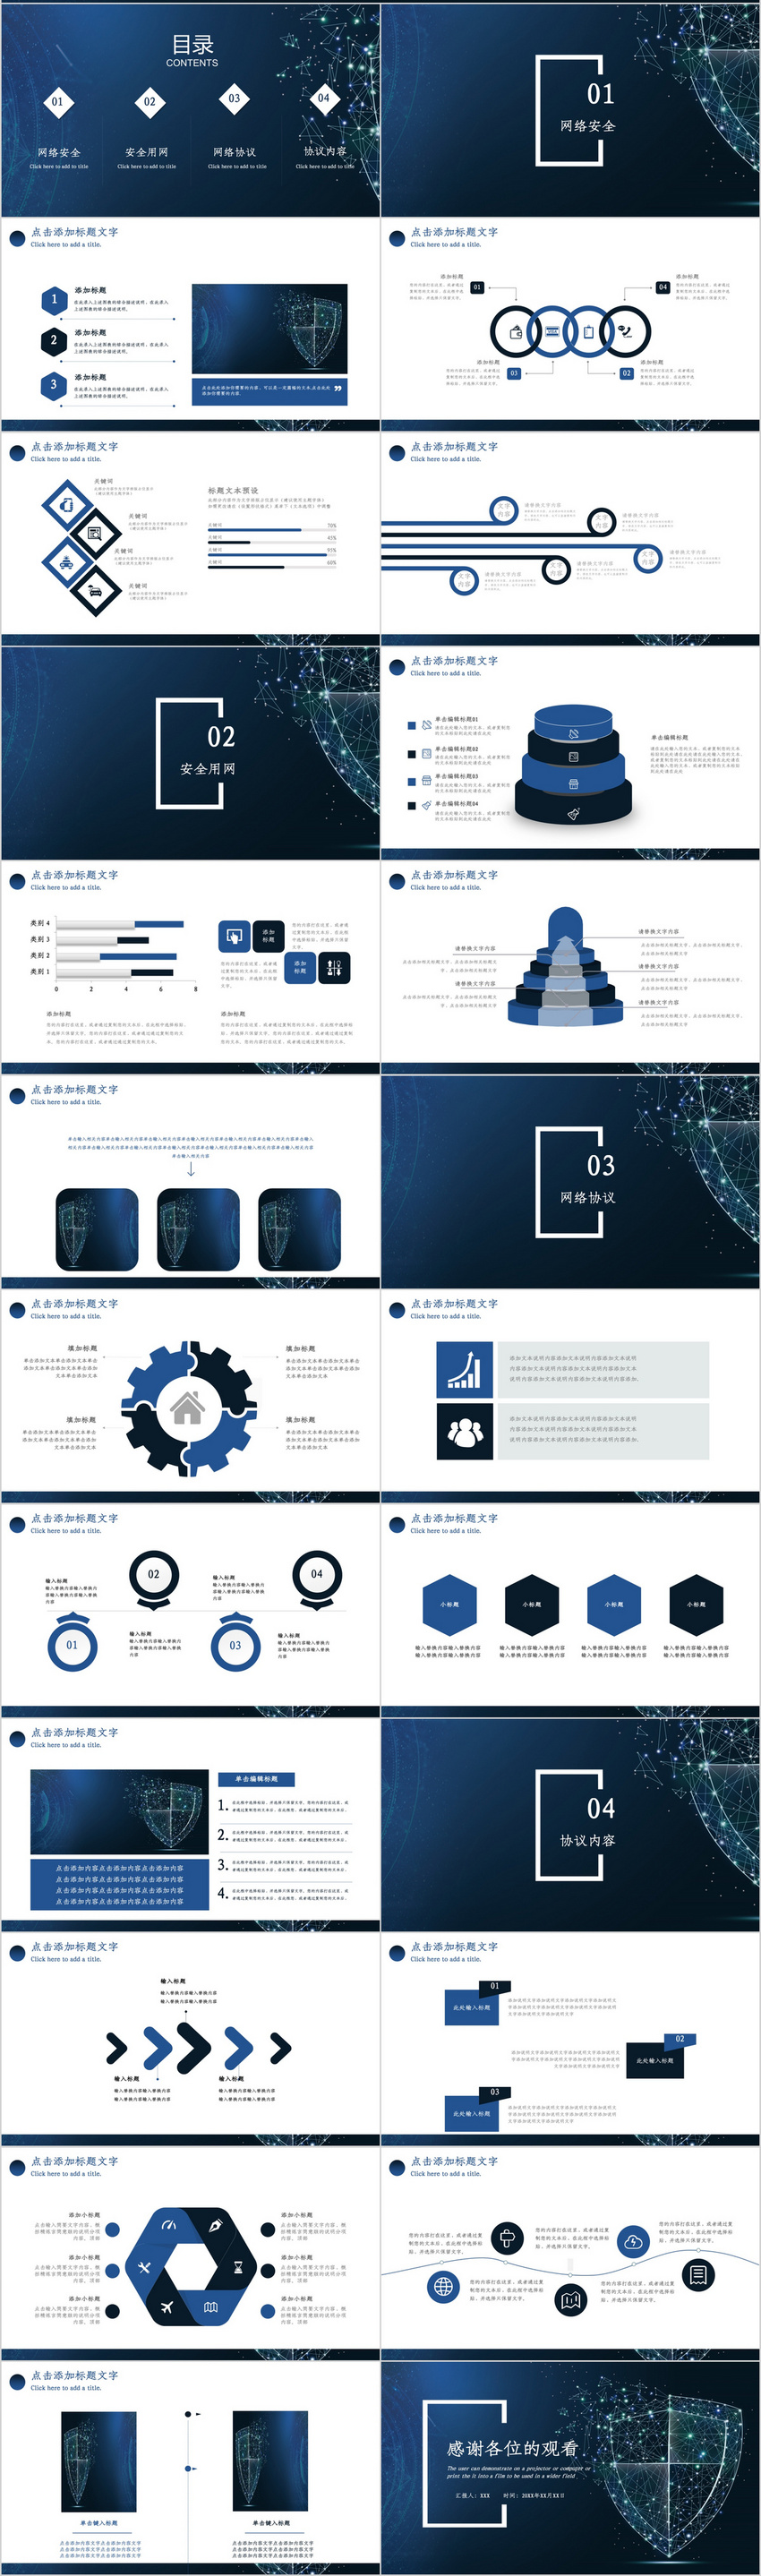 Network security ppt template powerpoint templete_ppt free download